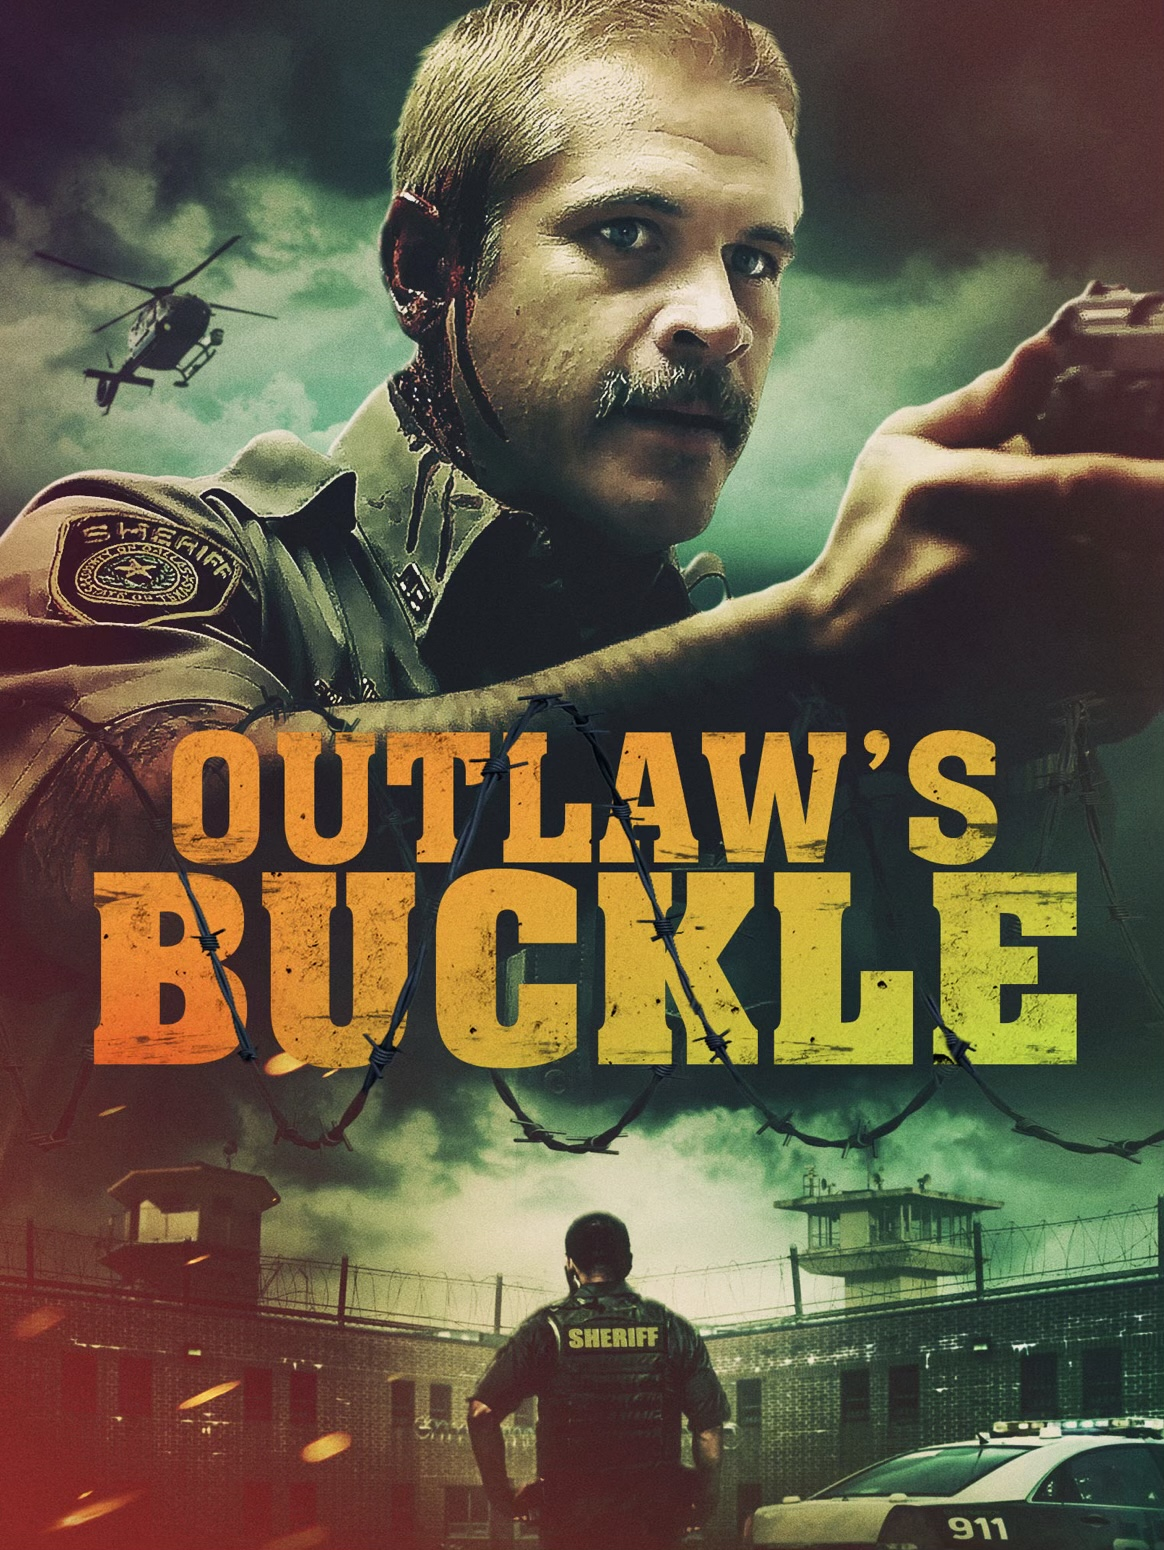 Outlaw's Buckle| Watch Movies Online